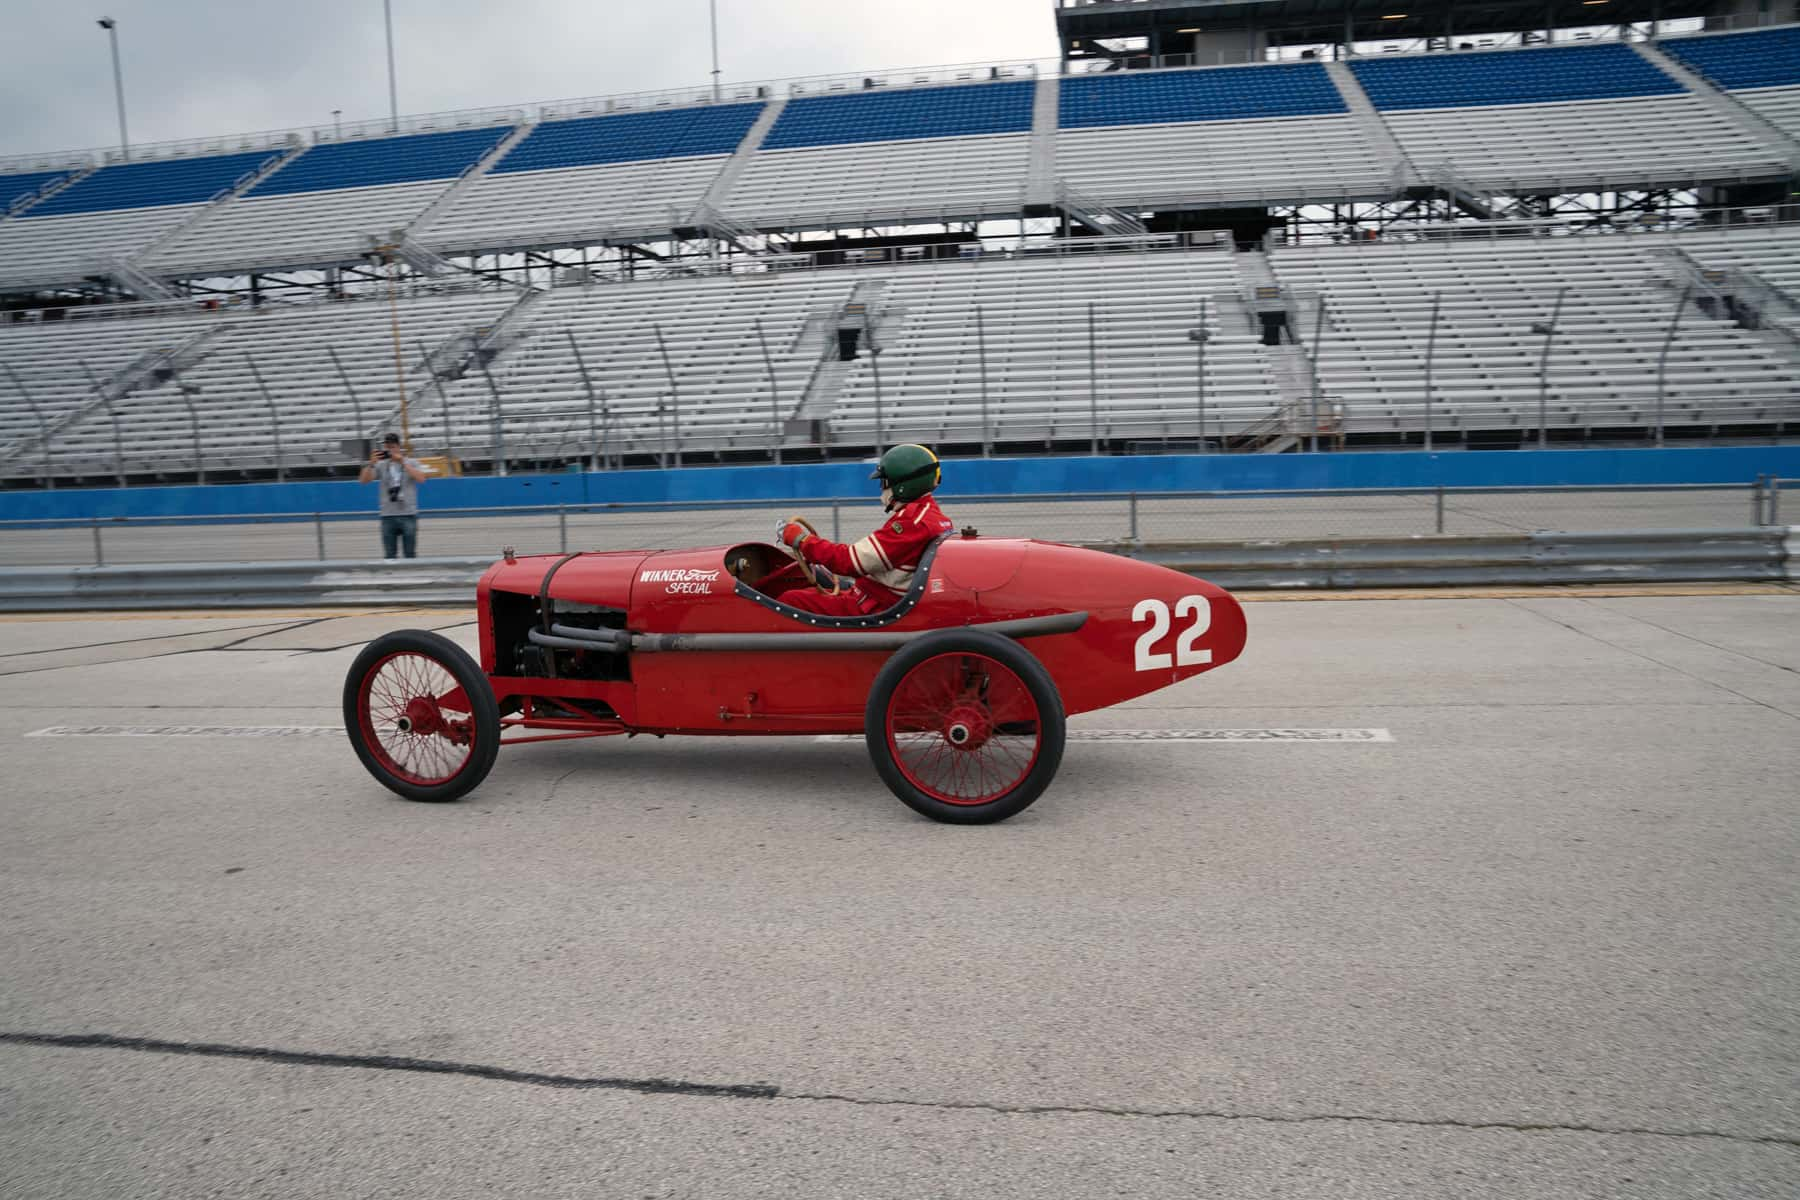 062019_milwaukeemile_208